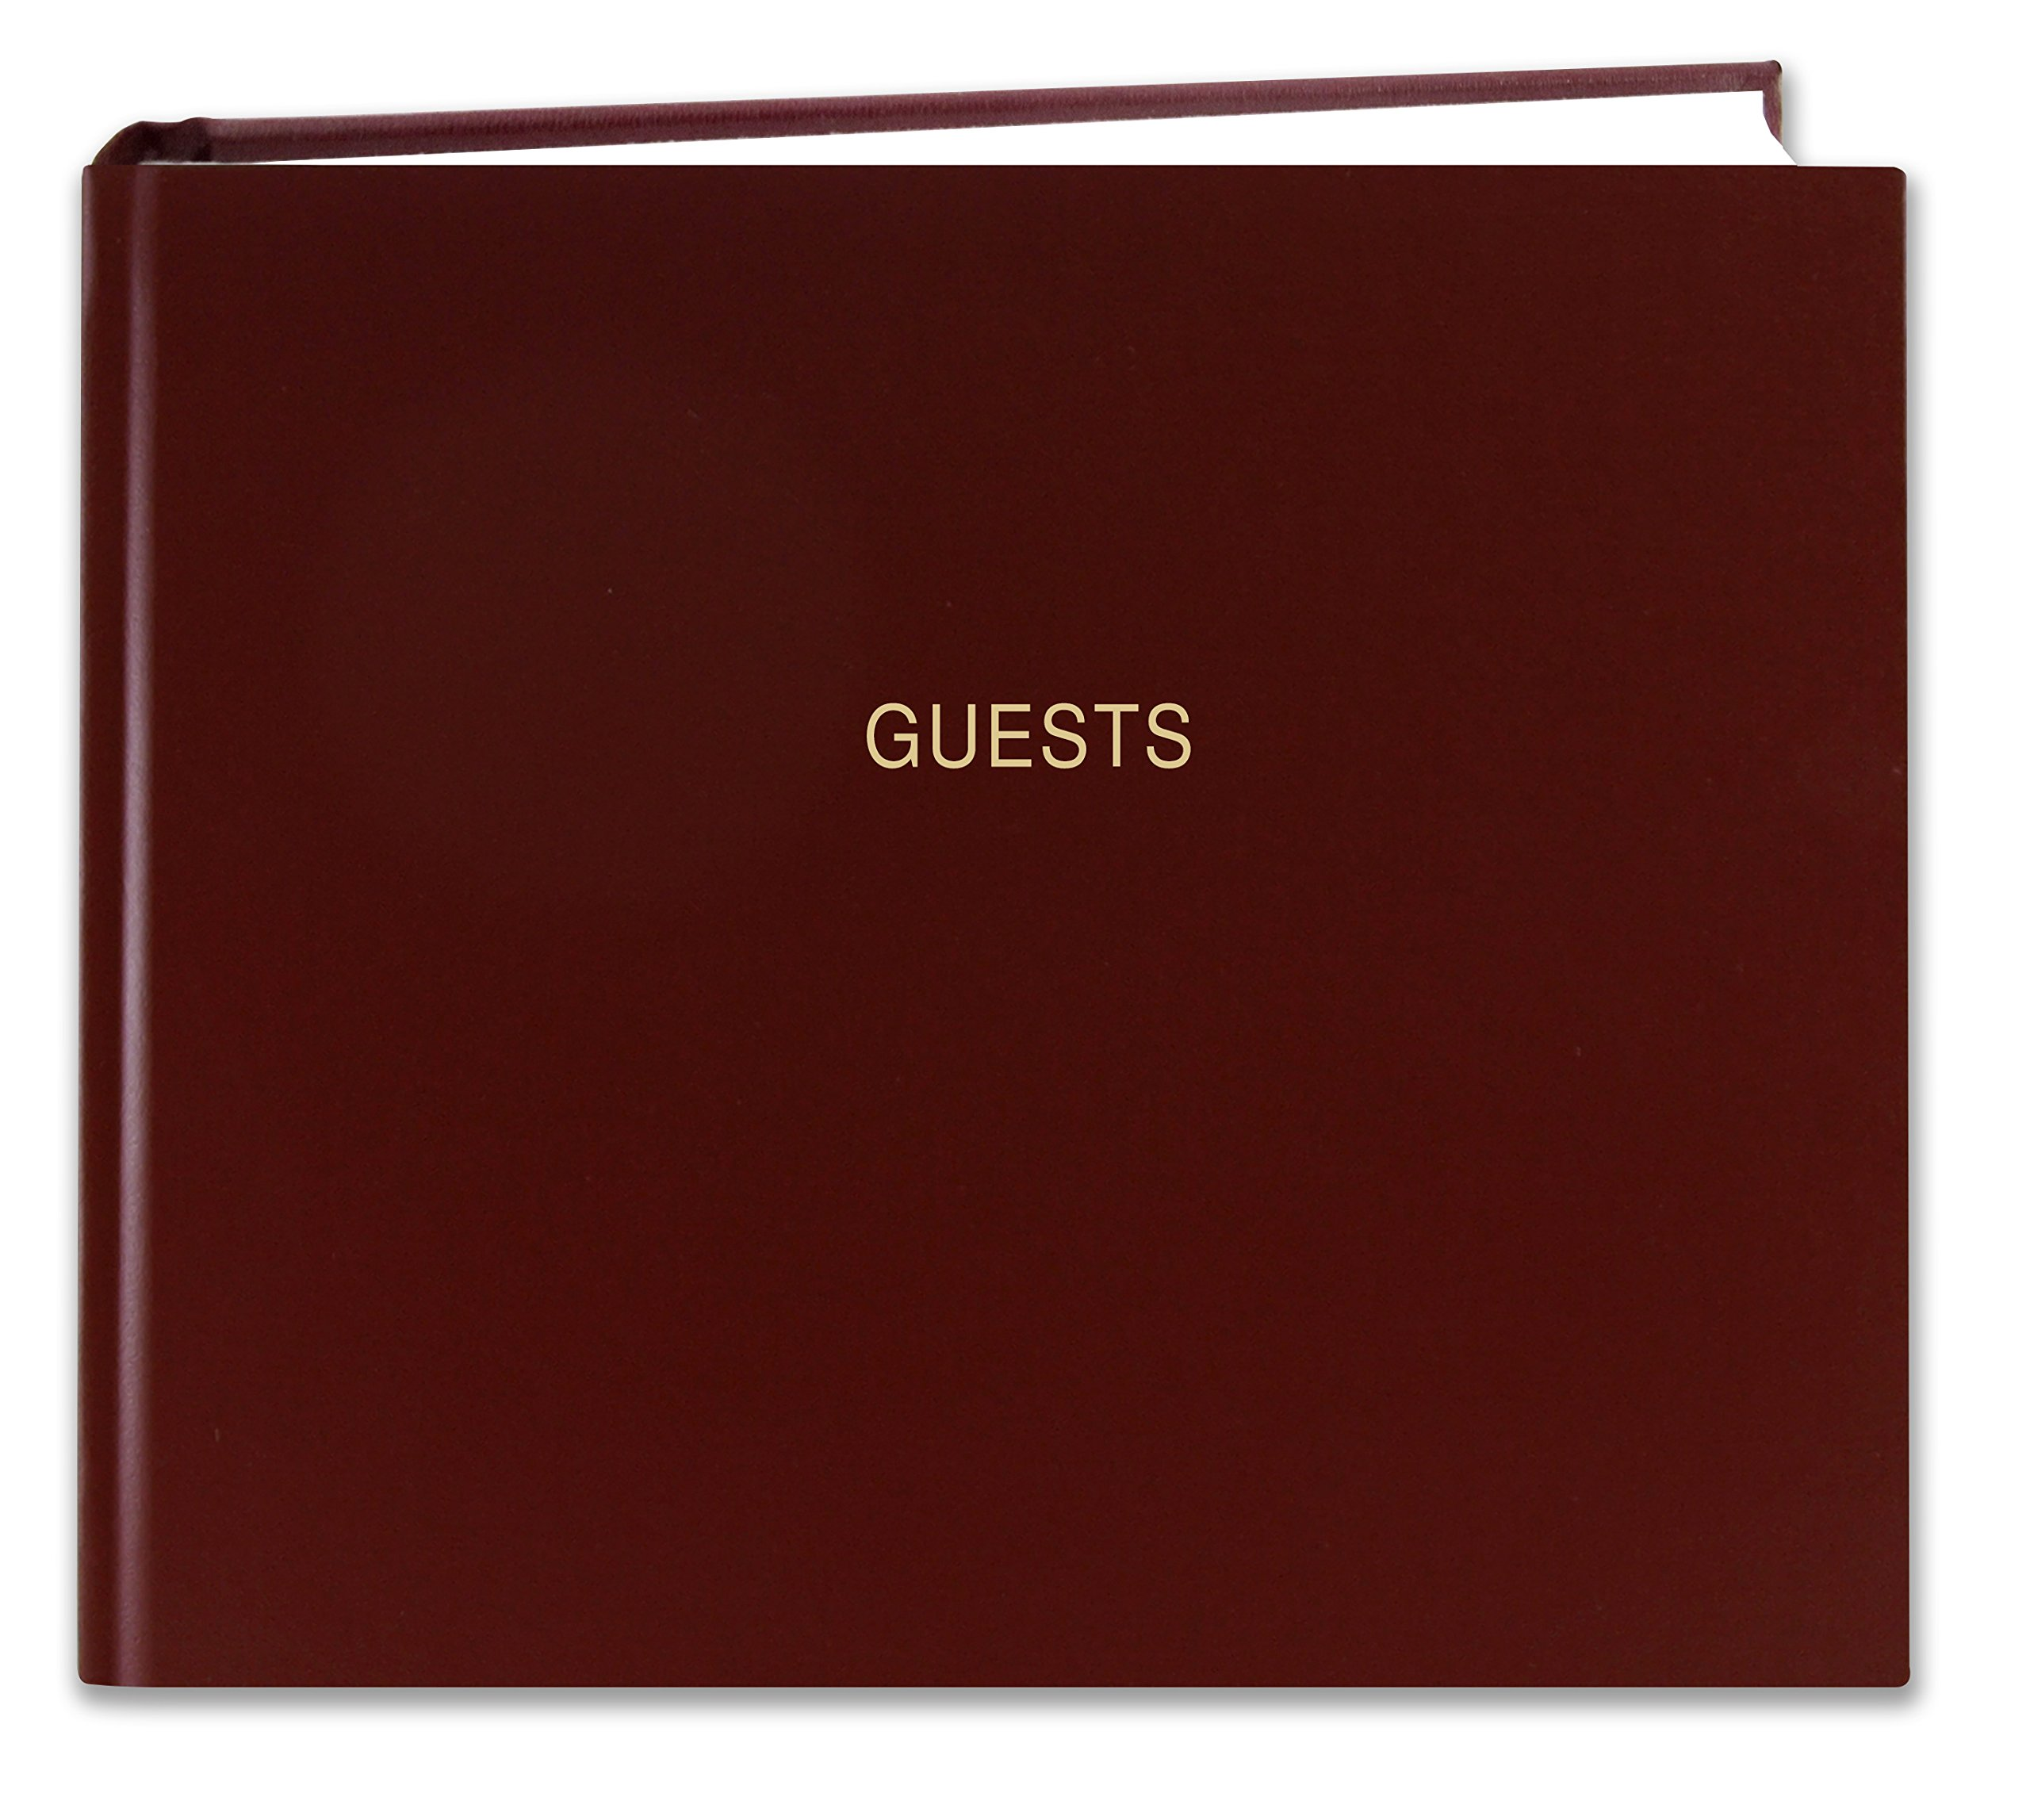 BookFactory Guest Book (120 pages) / Guest Sign-In Book / Guest Registry / Guestbook - Burgundy Cover, Smyth Sewn Hardbound, 8 7/8'' x 7'' (LOG-120-GUEST-A-LMT25)